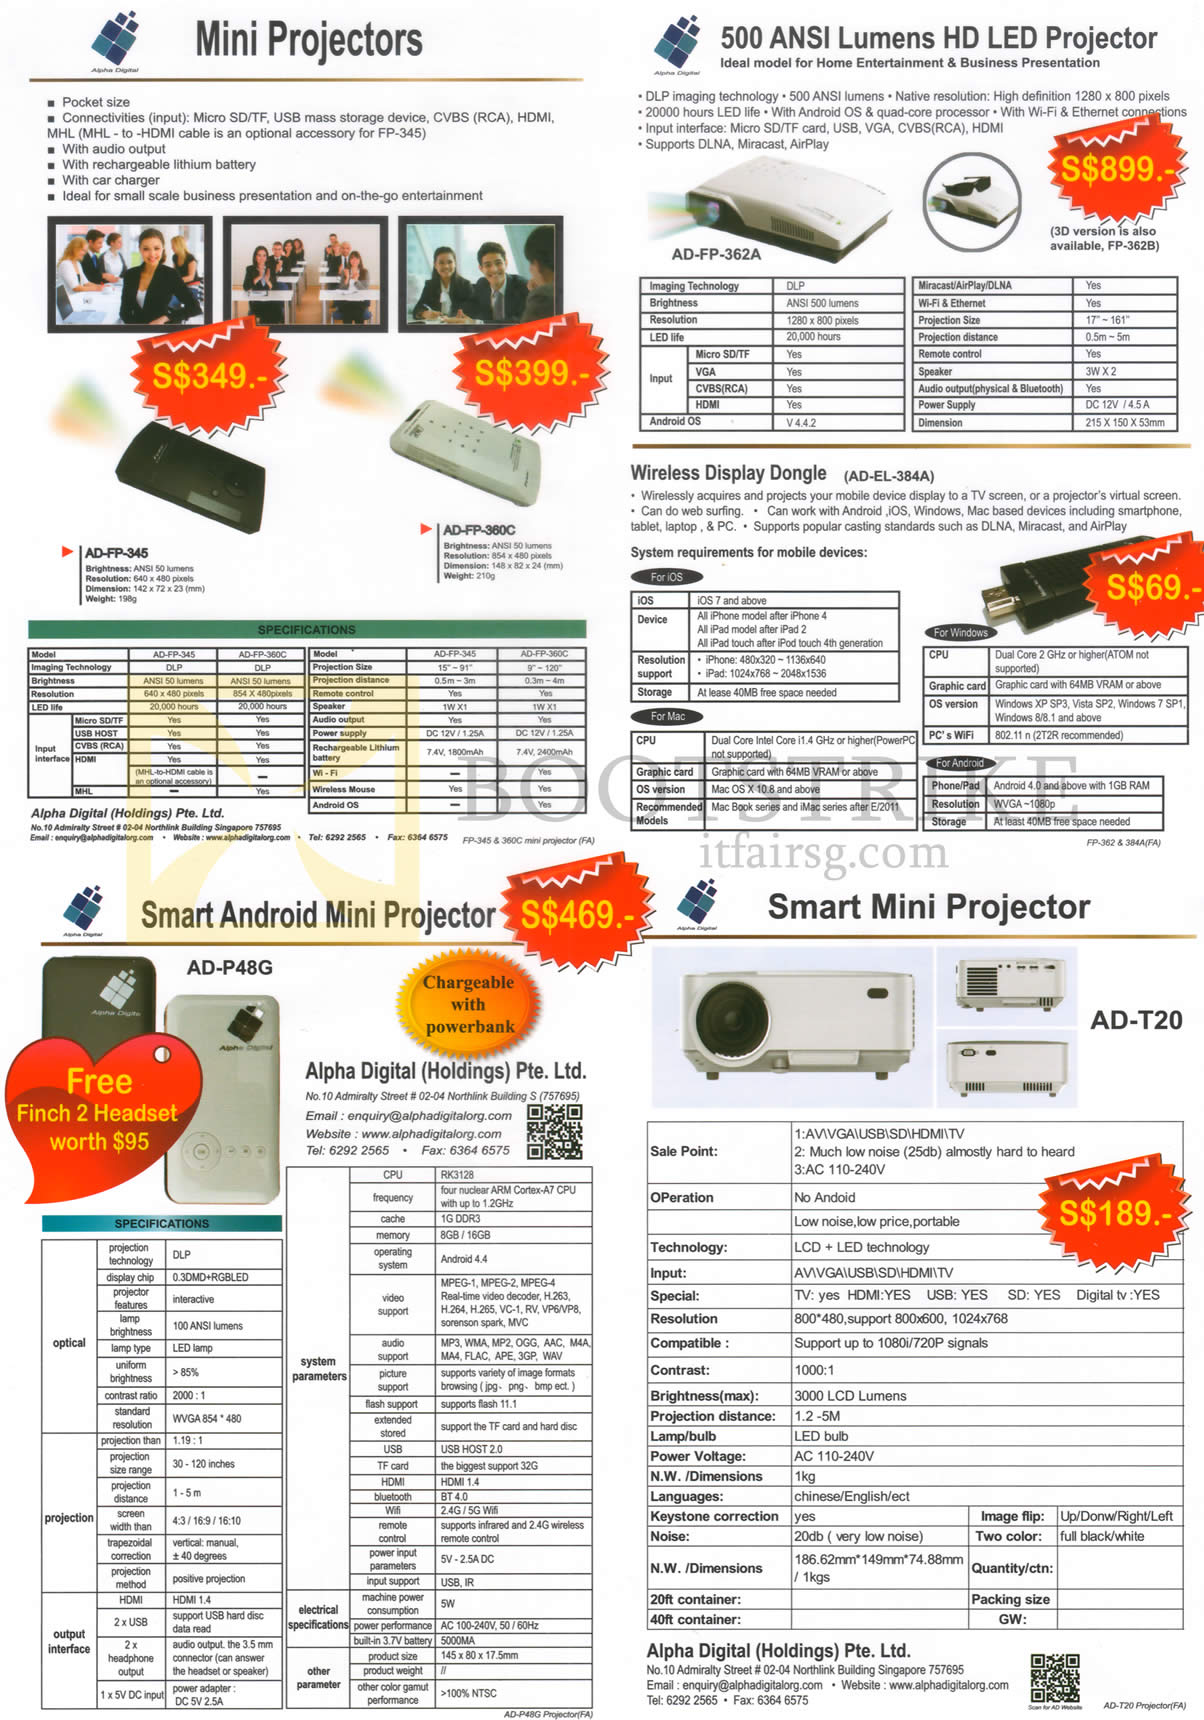 COMEX 2016 price list image brochure of Alpha Digital Mini Projectors, LED Projectors, Smart Android Mini Projector, AD-FP345, FP-360C, P48G, AD-T20